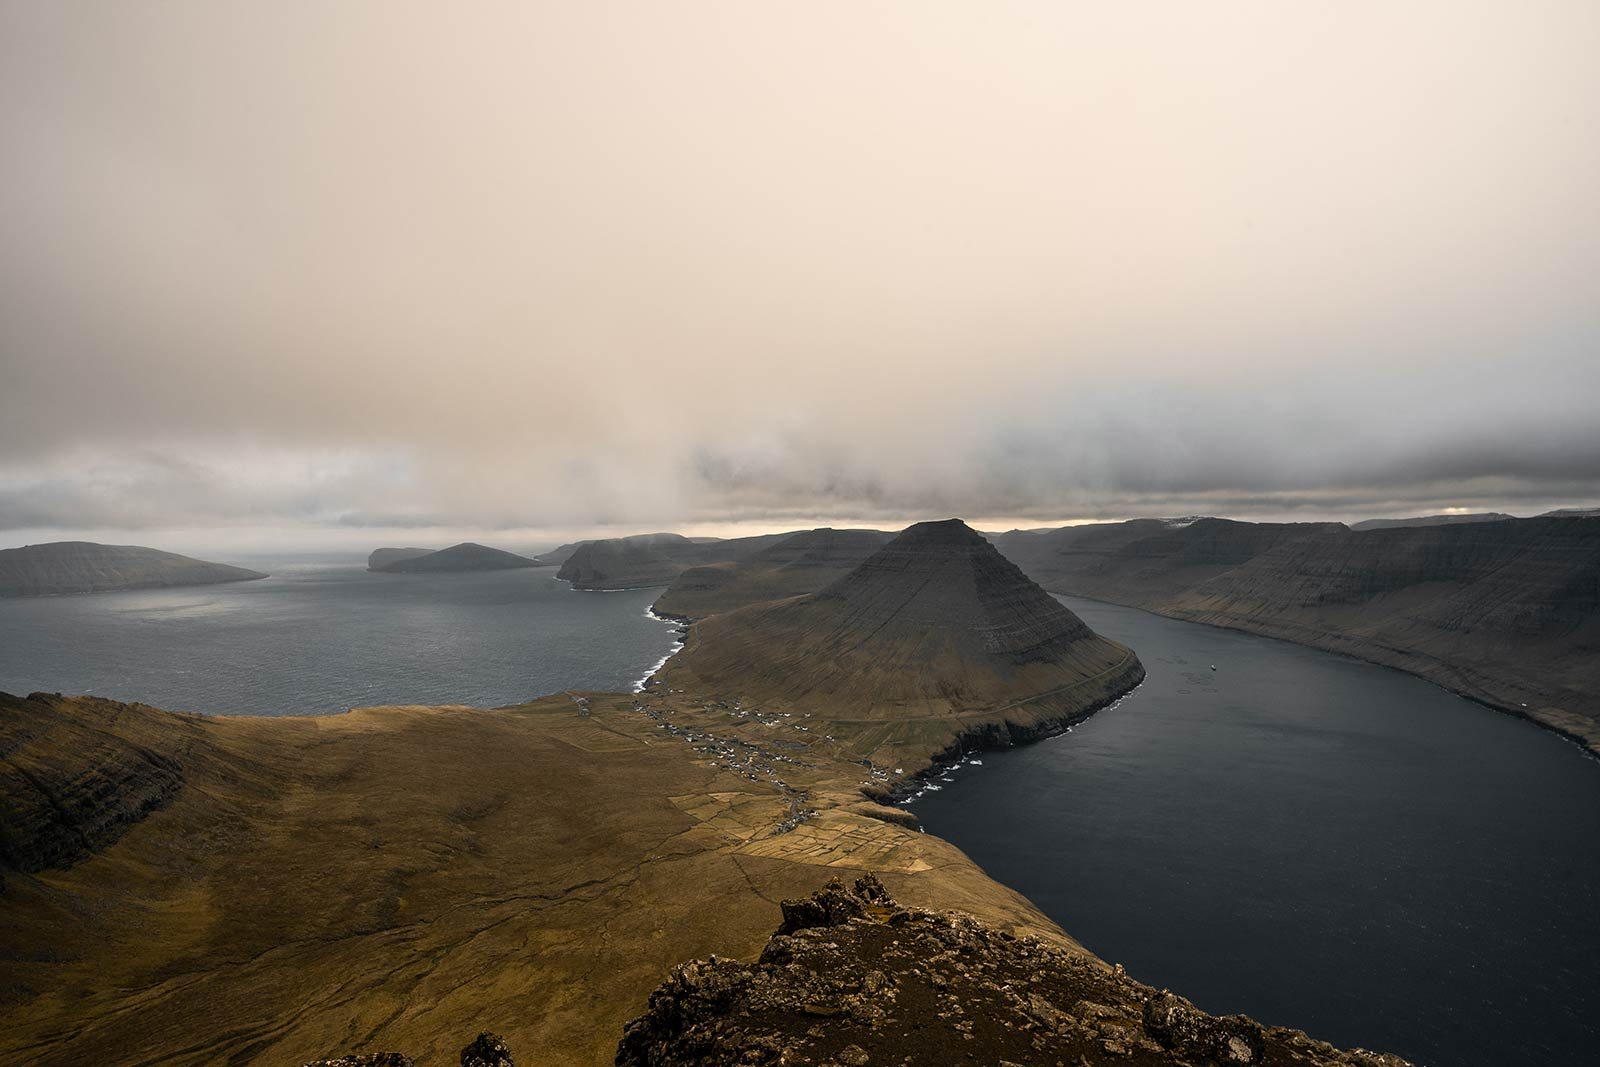 Hike to Villingdalsfjall in Faroe Islands. Getting blown off Mt Villingardalsfjall